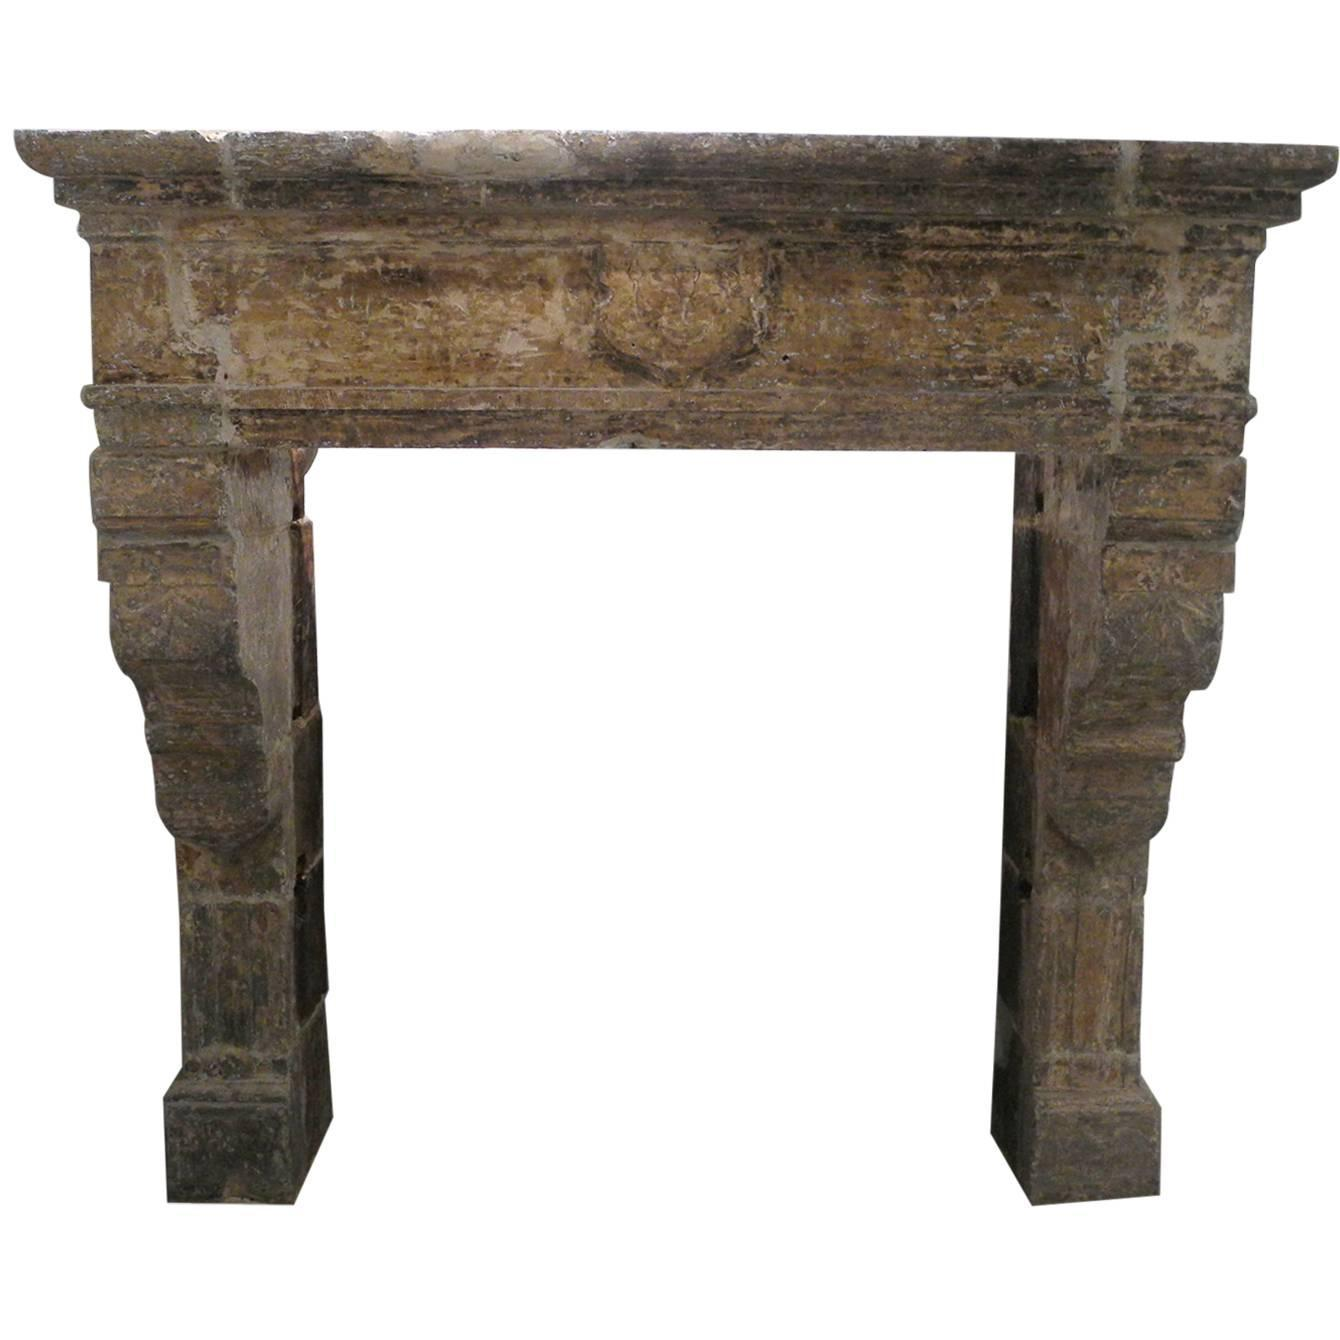 antique renaissance mantel with carved legs and crest atop